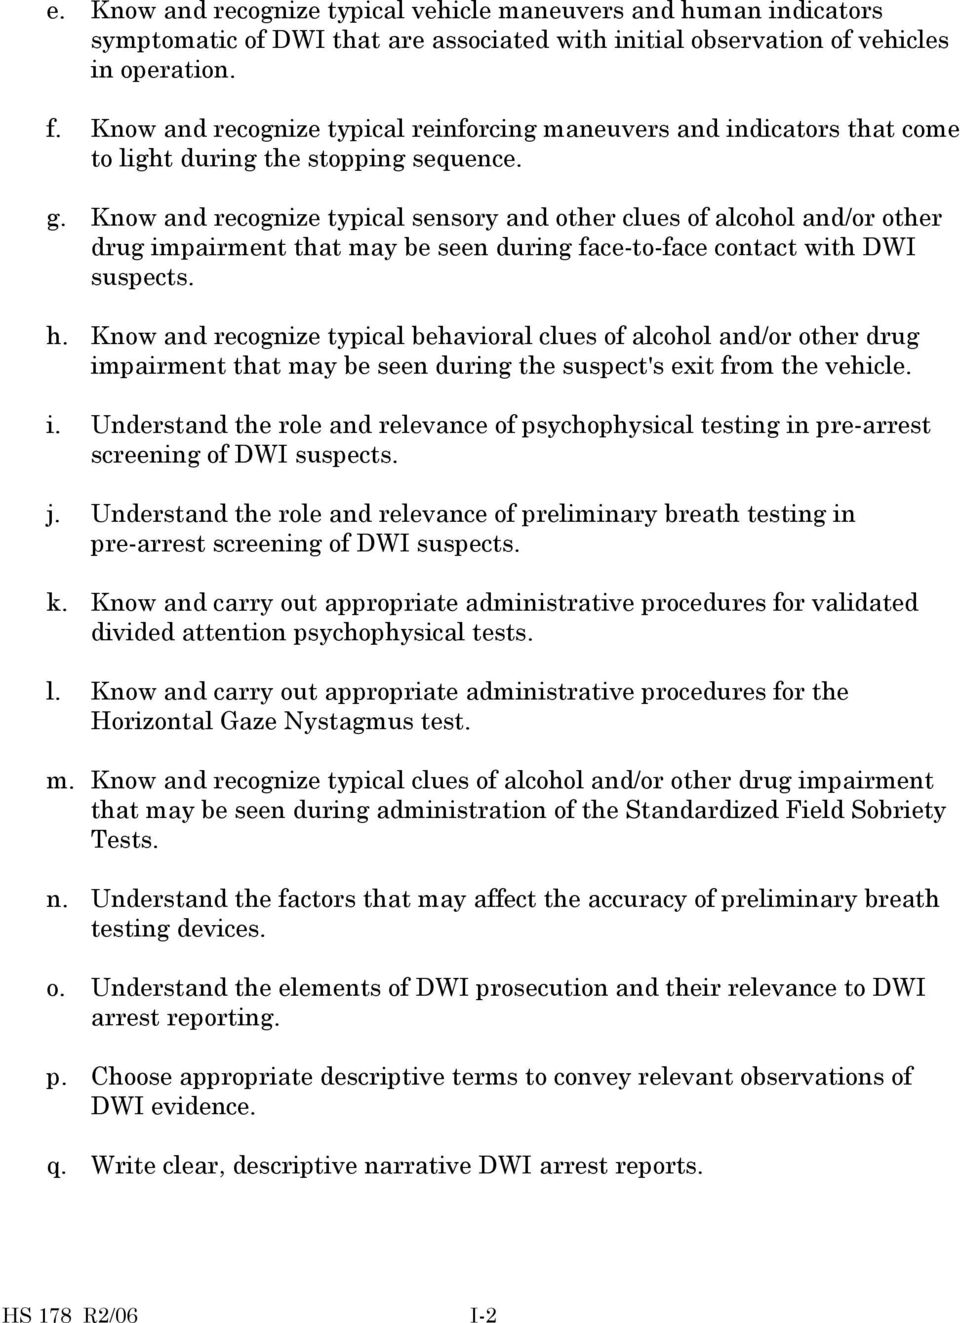 Knw and recgnize typical behaviral clues f alchl and/r ther drug impairment that may be seen during the suspect's exit frm the vehicle. i. Understand the rle and relevance f psychphysical testing in pre-arrest screening f DWI suspects.